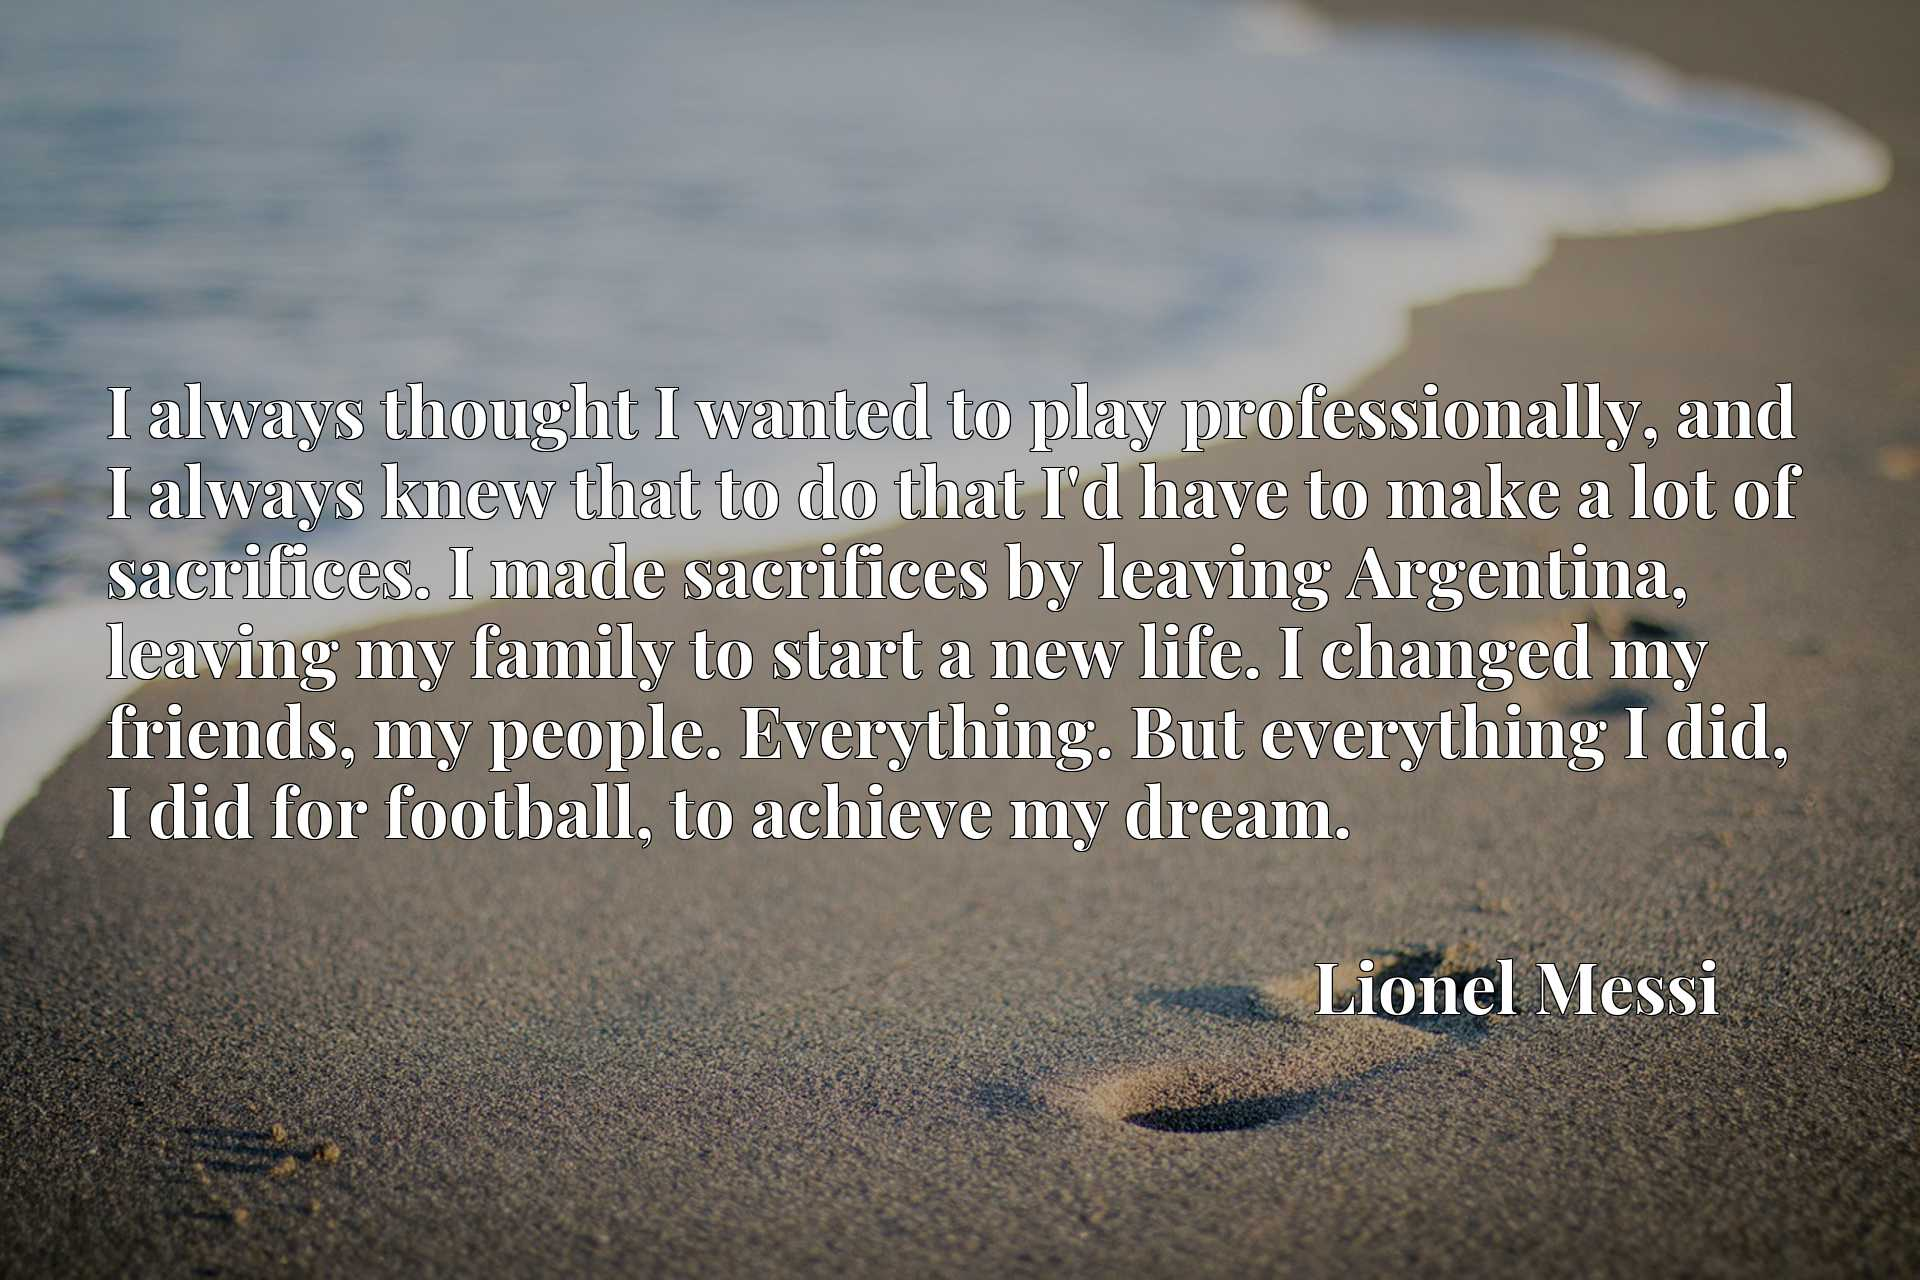 I always thought I wanted to play professionally, and I always knew that to do that I'd have to make a lot of sacrifices. I made sacrifices by leaving Argentina, leaving my family to start a new life. I changed my friends, my people. Everything. But everything I did, I did for football, to achieve my dream.